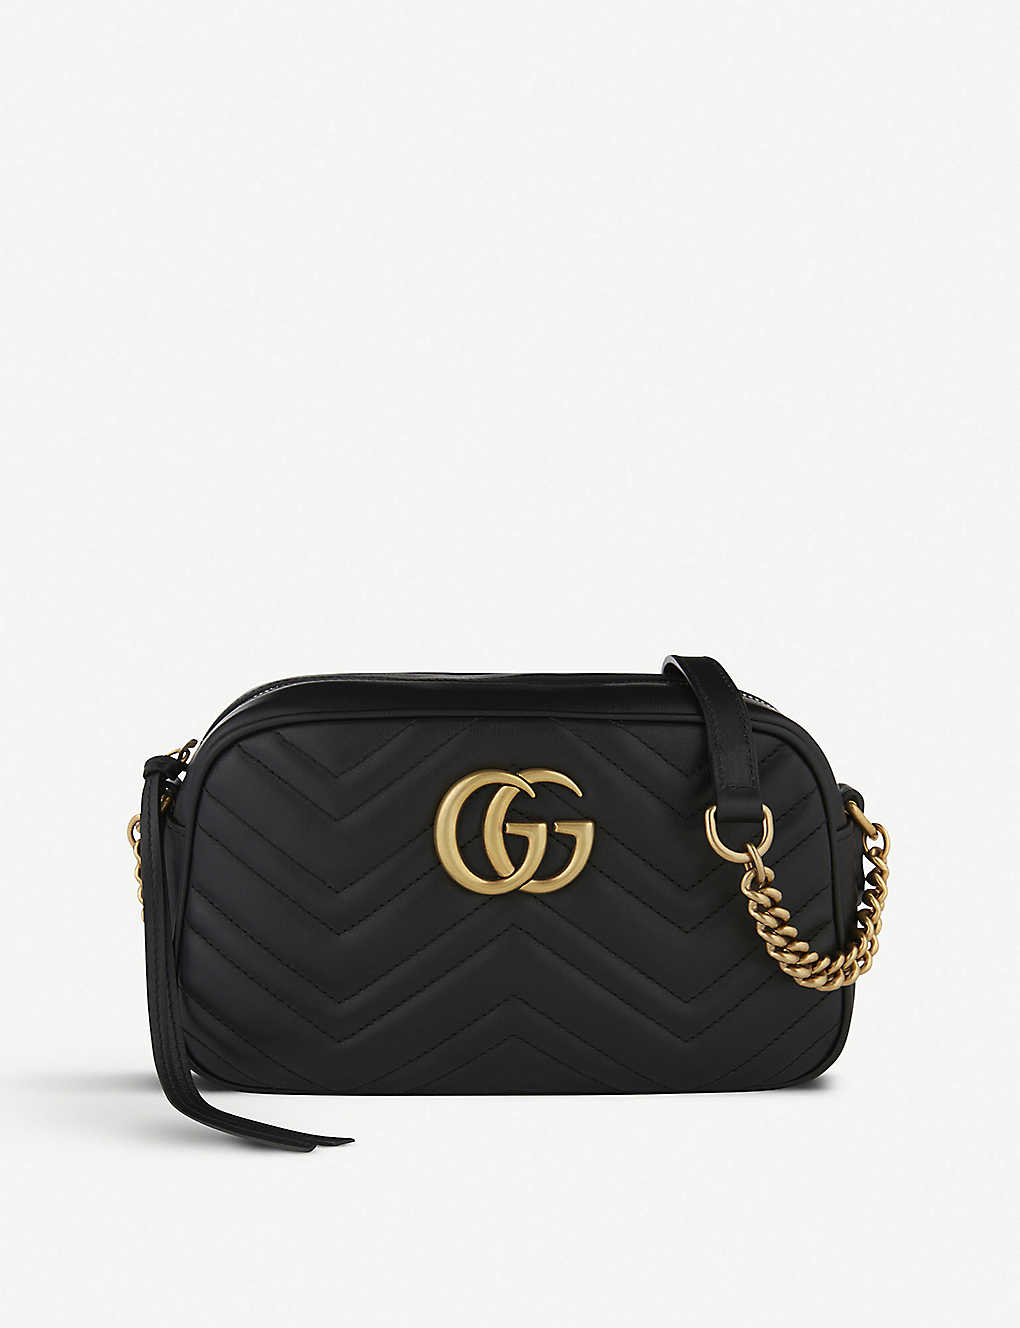 01b0392999fa29 GUCCI - Marmont matelassé leather shoulder bag | Selfridges.com